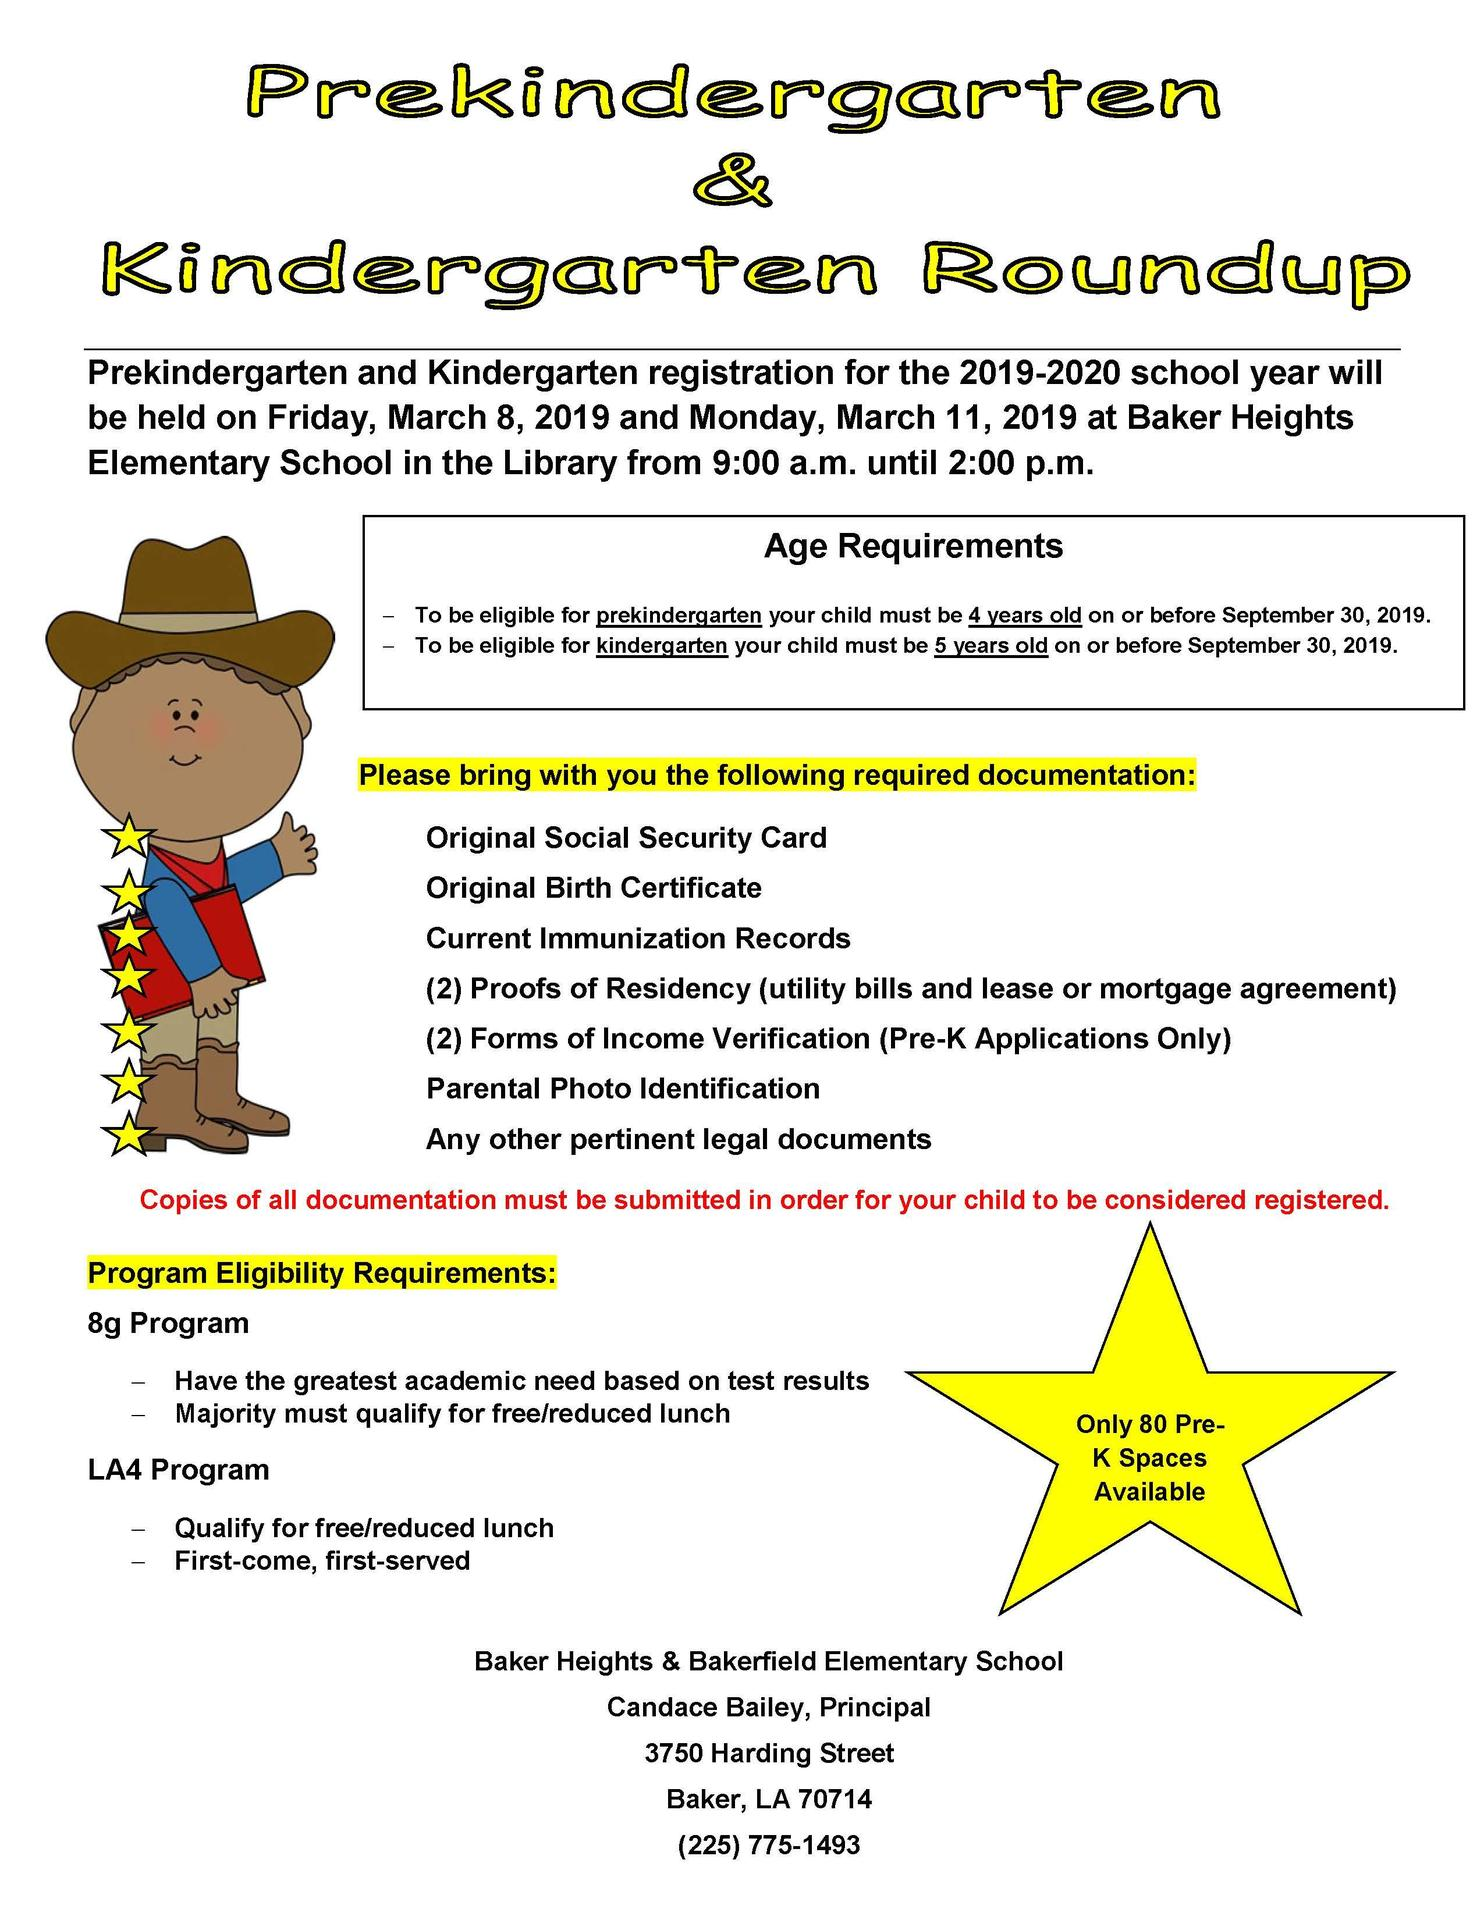 a photo of the announcement for Pre-K and K round-up at Bakerfield & Baker Heights Schools